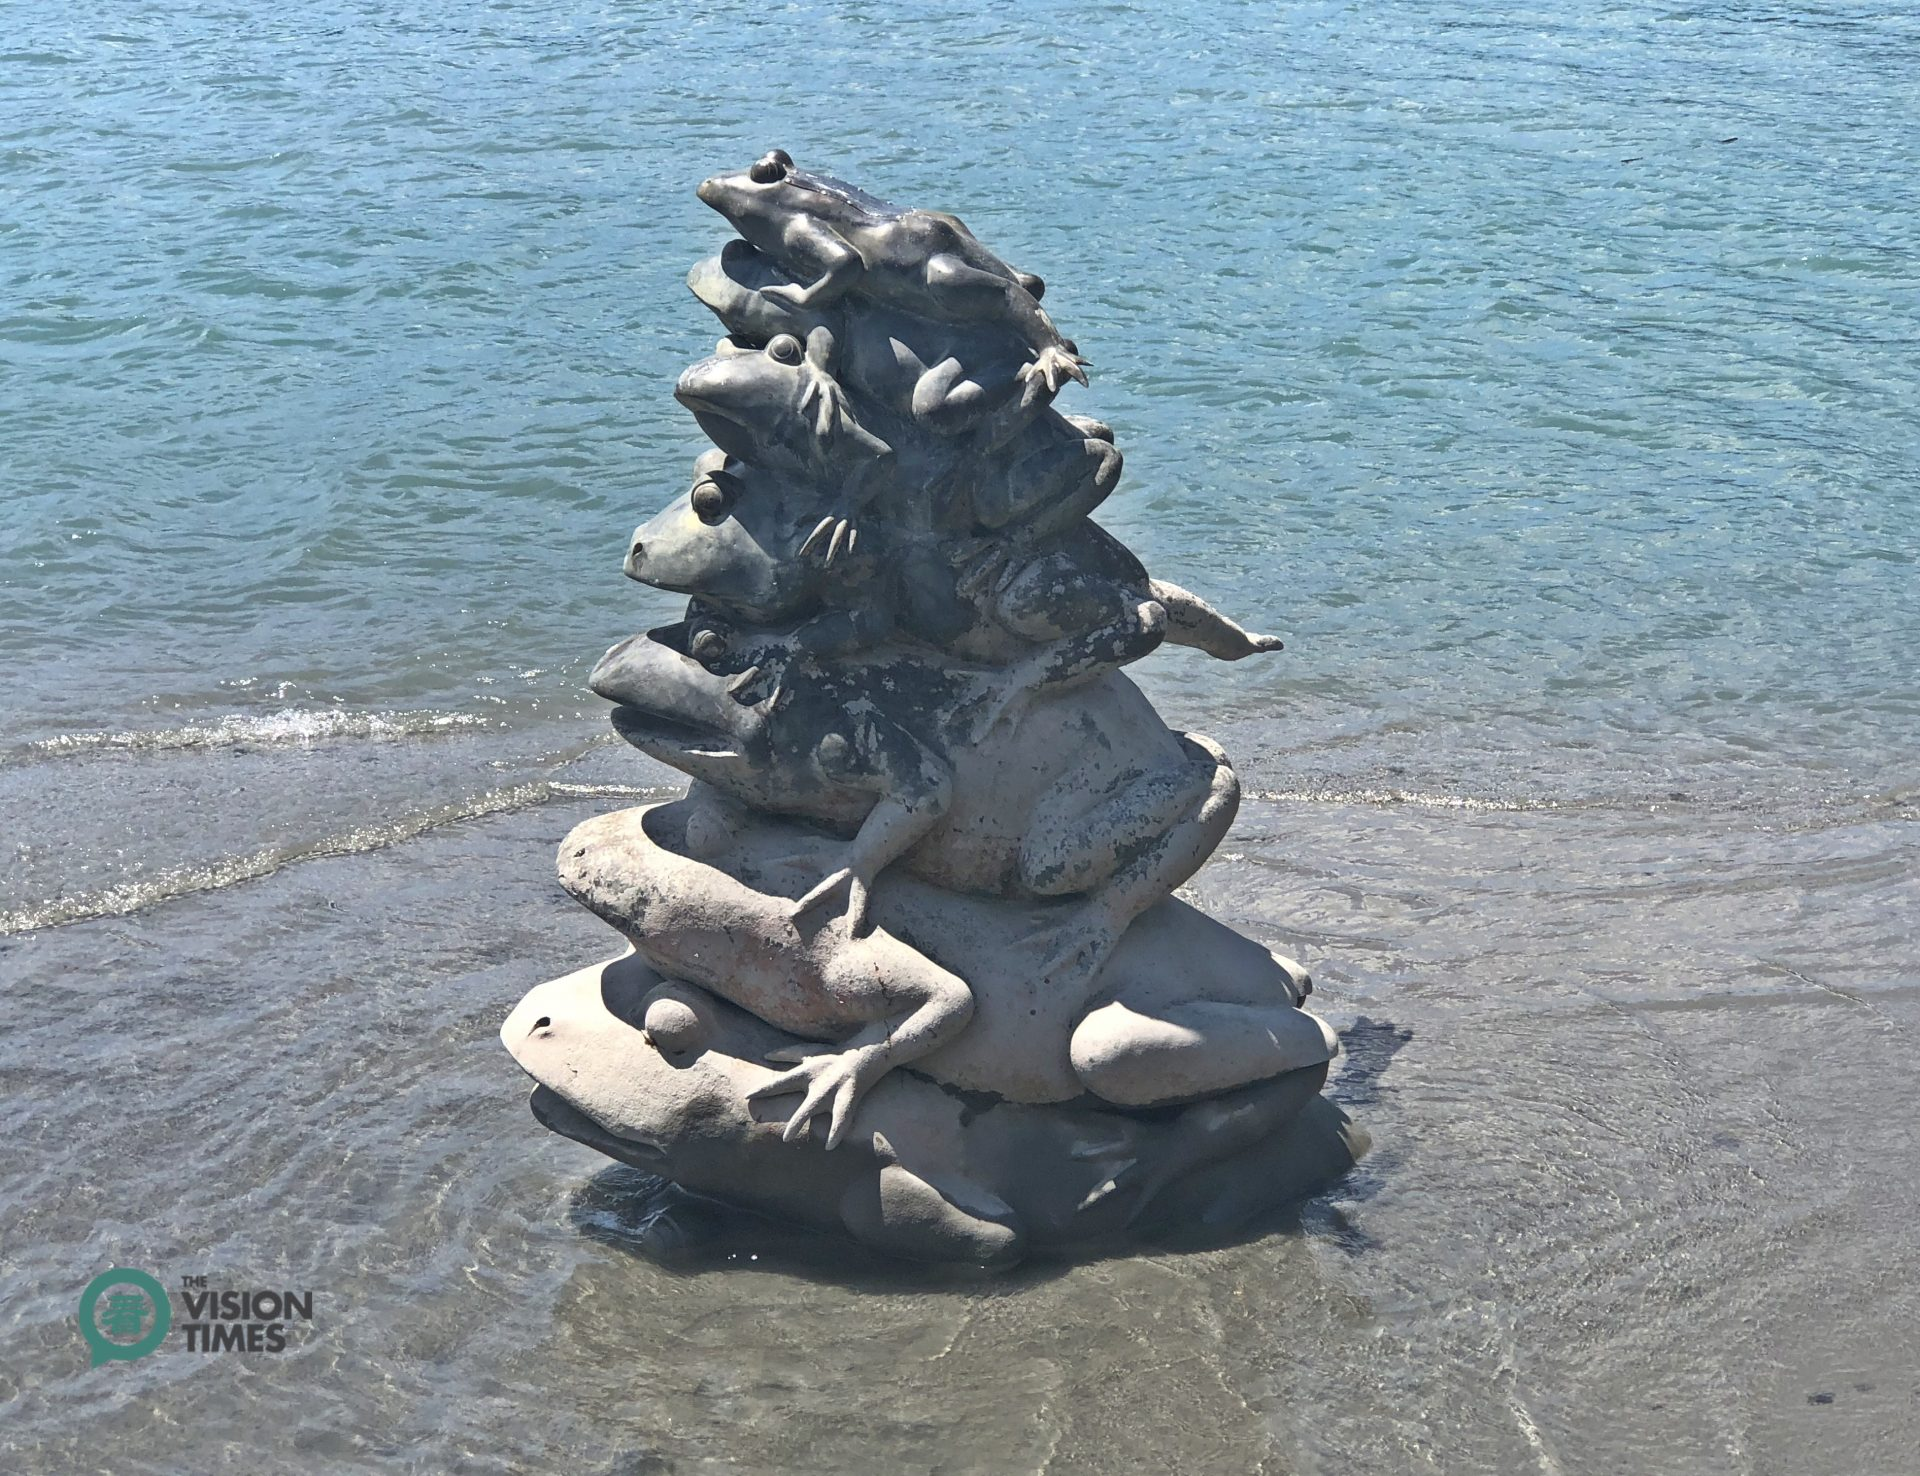 The statue of nine stacked frogs at Sun Moon Lake's Shueiuatou (水蛙頭).(Image: Billy Shyu / Vision Times)